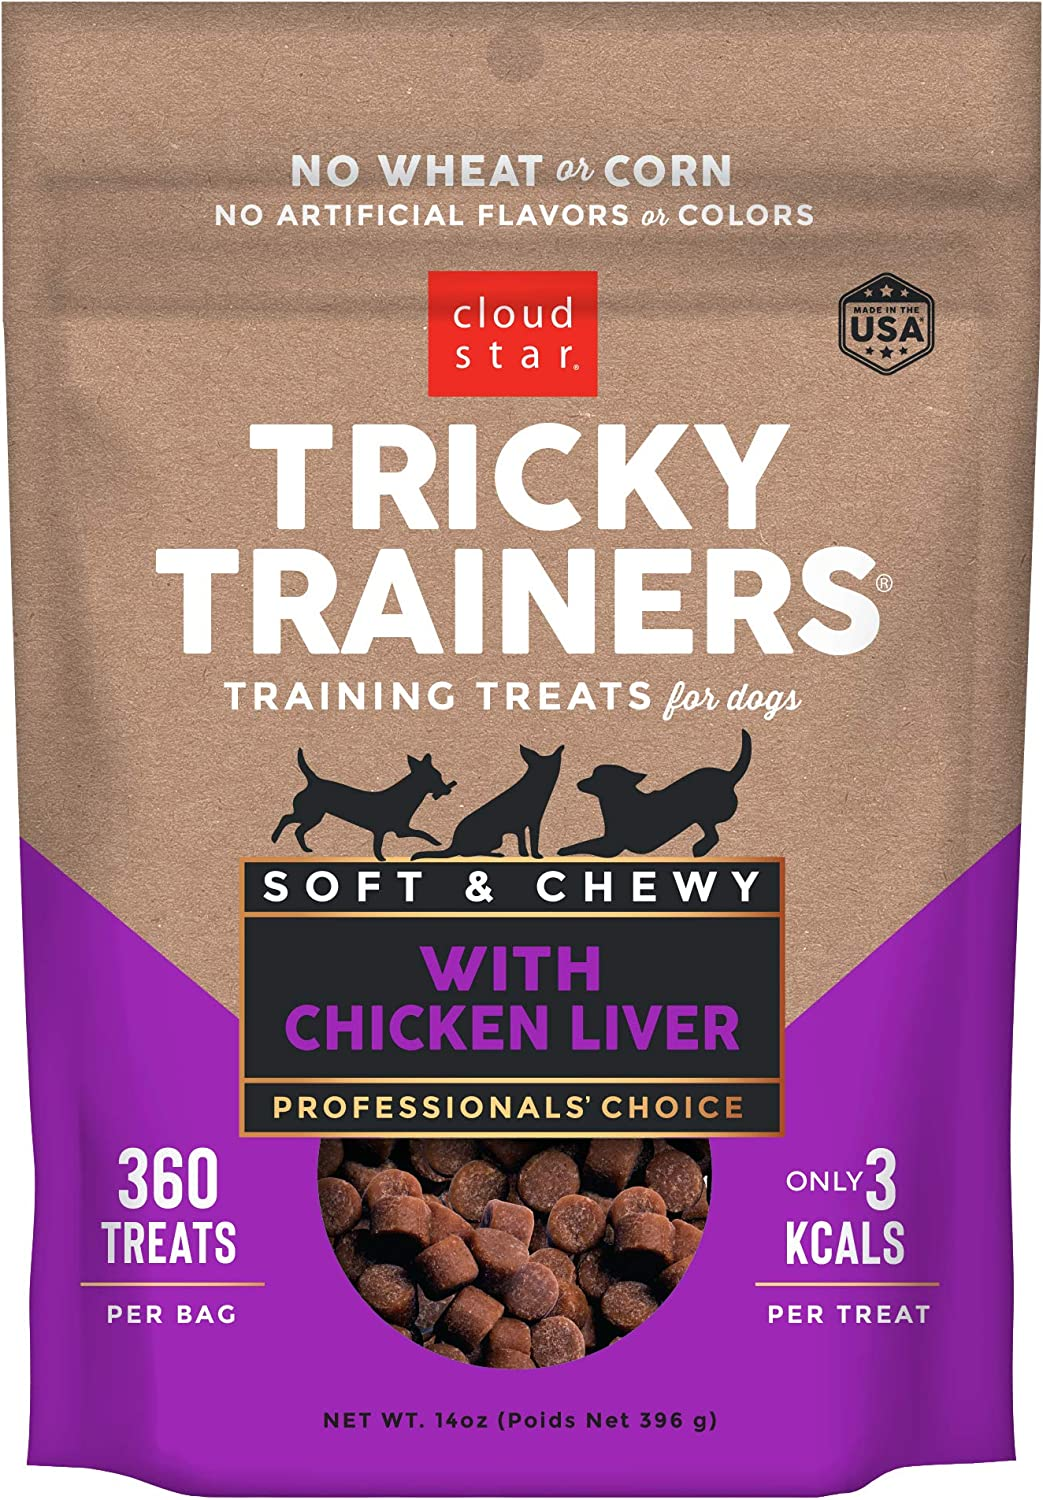 Cloud Star Tricky Trainers Chewy - Soft Low Calorie Dog Training Treats